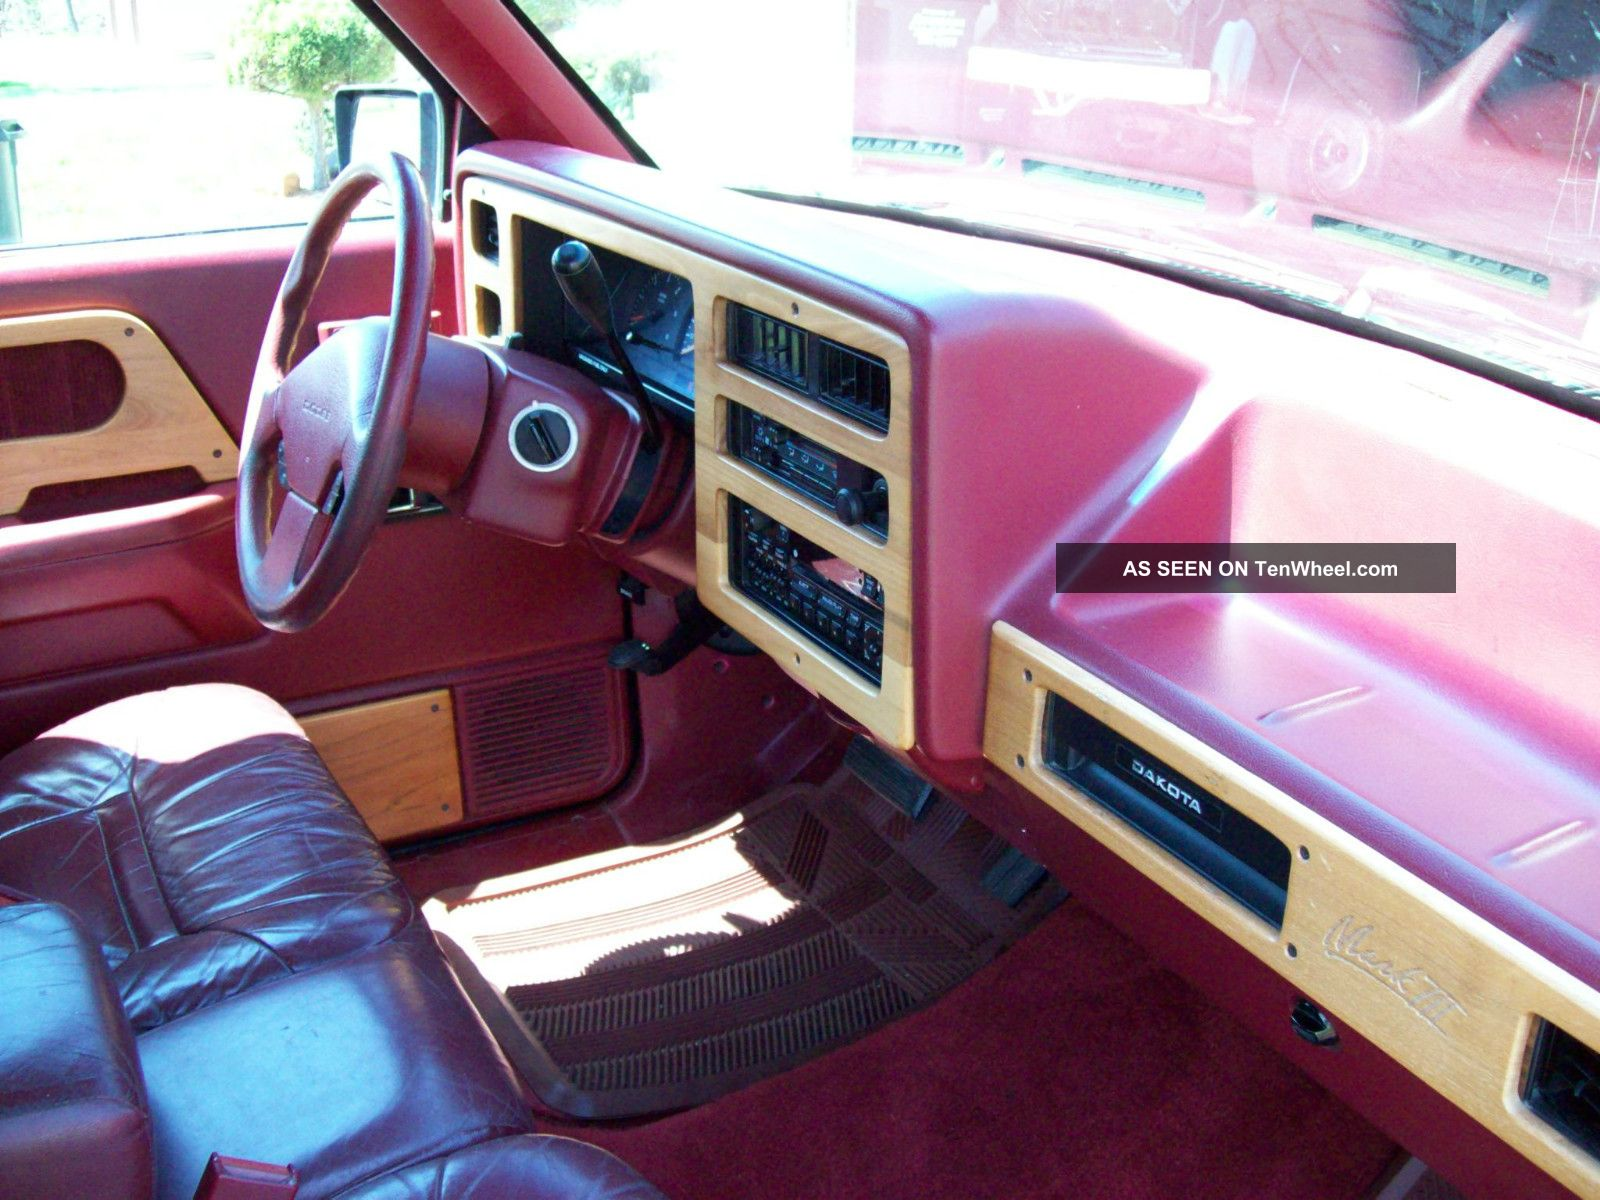 1993 Dodge Dakota Club Cab Mark Iii Conversion